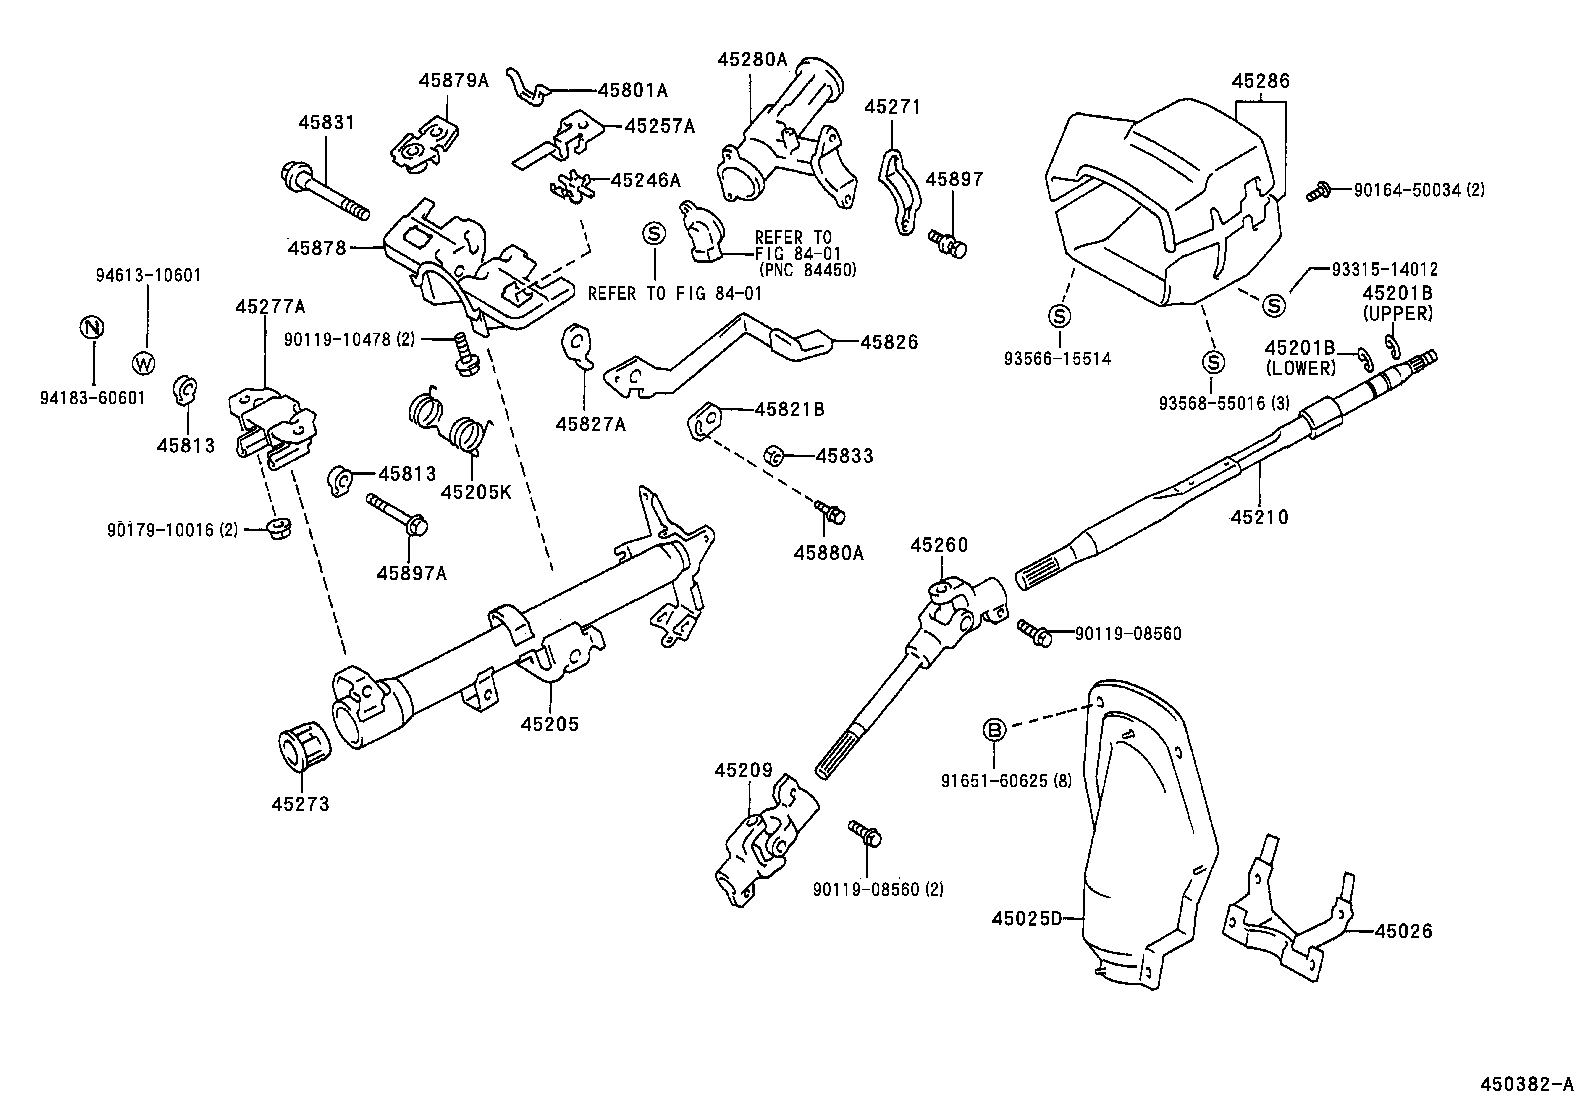 4501 steering Column Shaft on toyota tacoma 2010 electrical wiring diagram